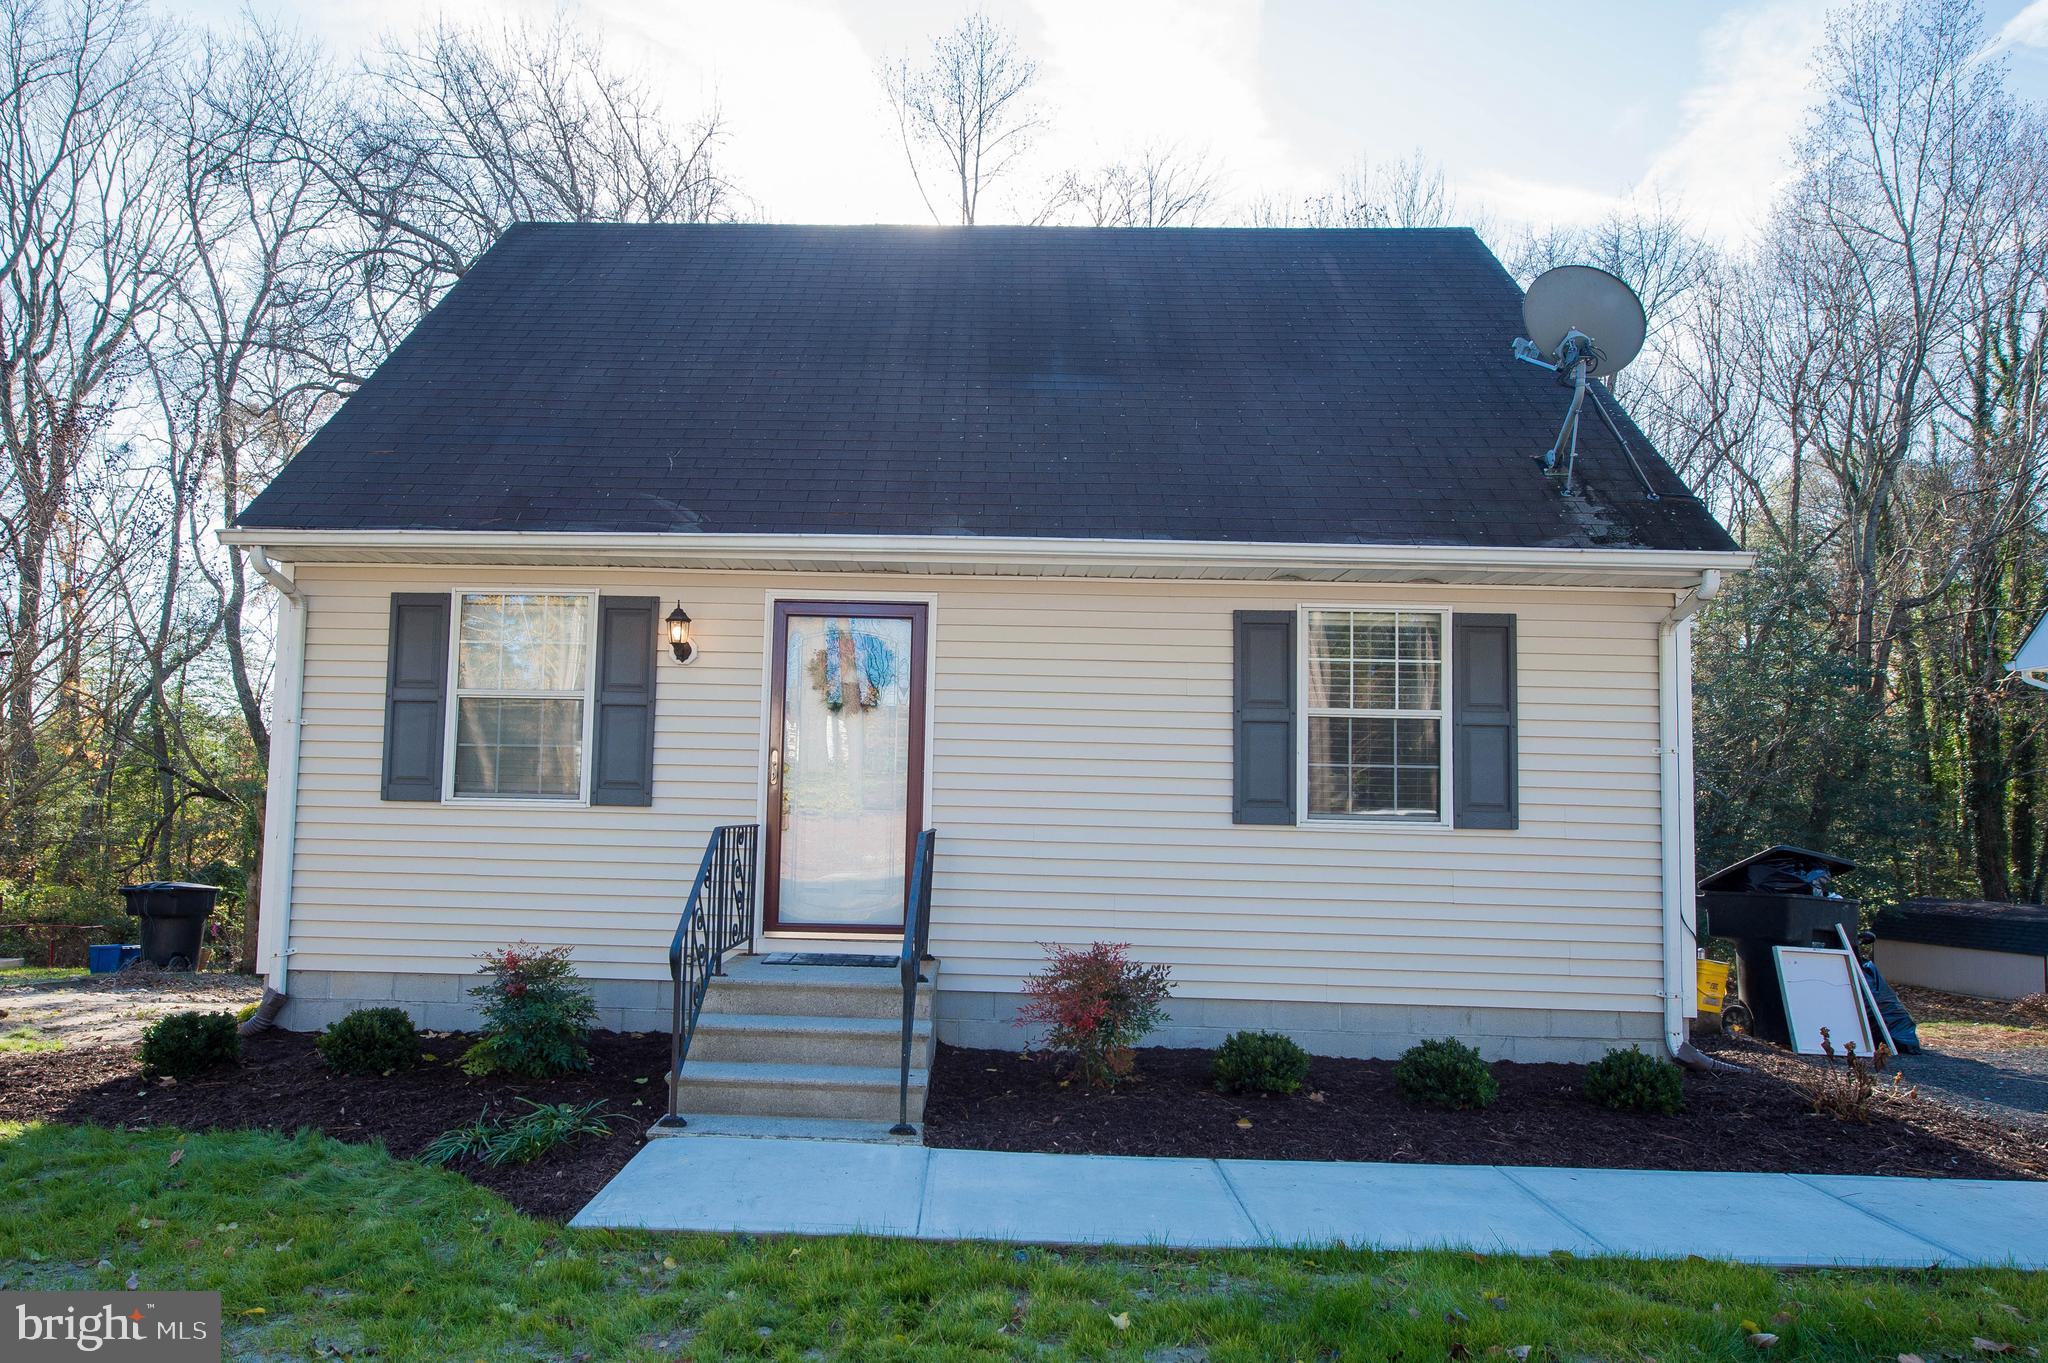 Own for less than renting! This adorable yet affordable Cape Cod has so much to offer for just about